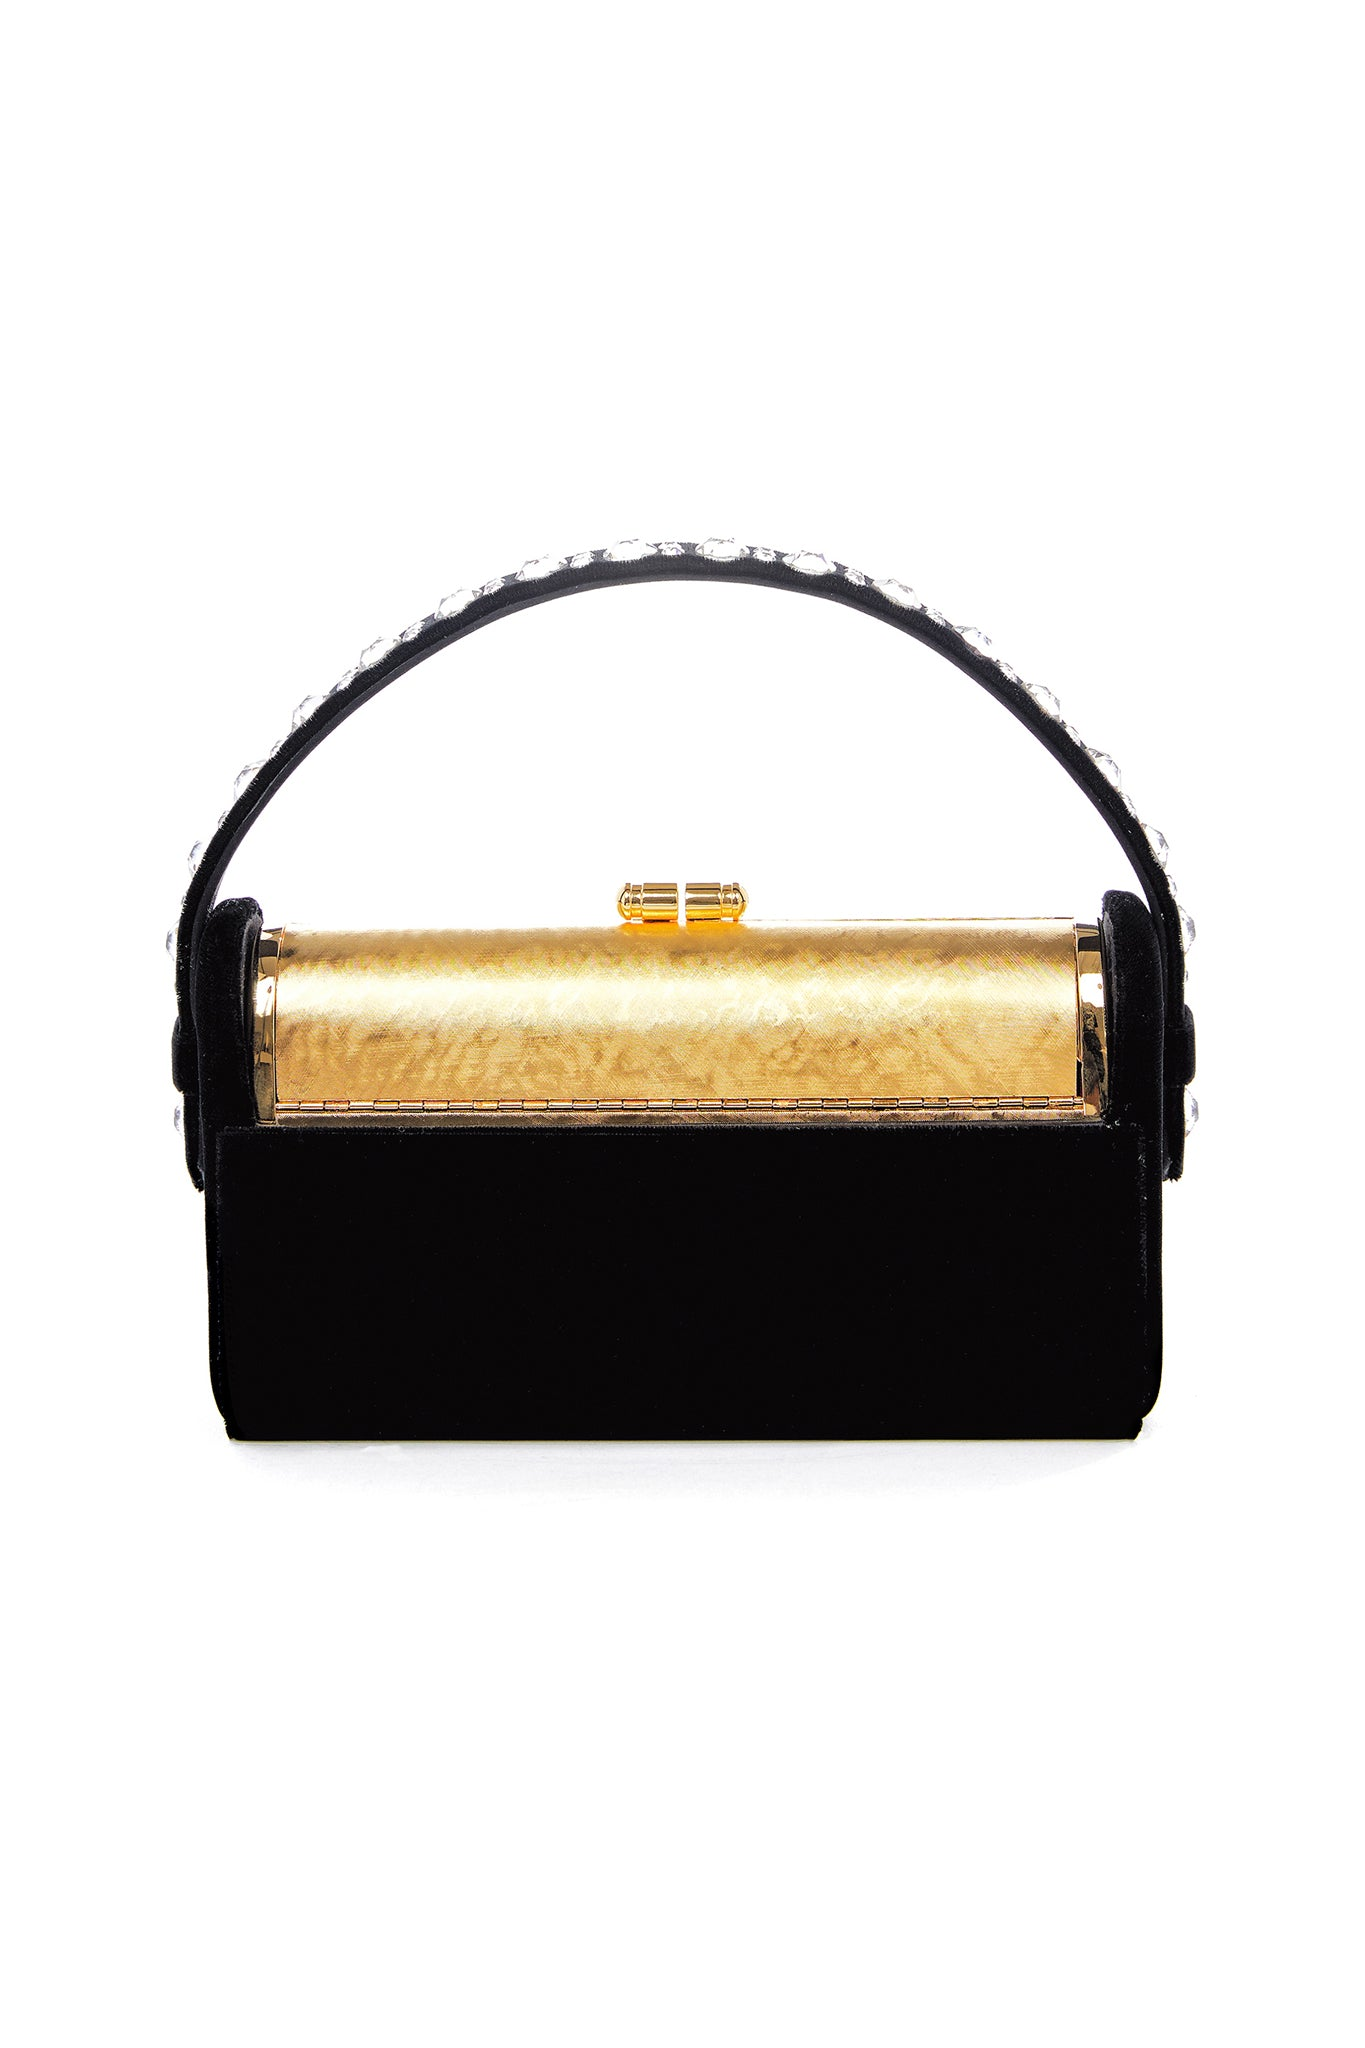 Gold Etched Régine Minaudière with Black Velvet Swarovski Case